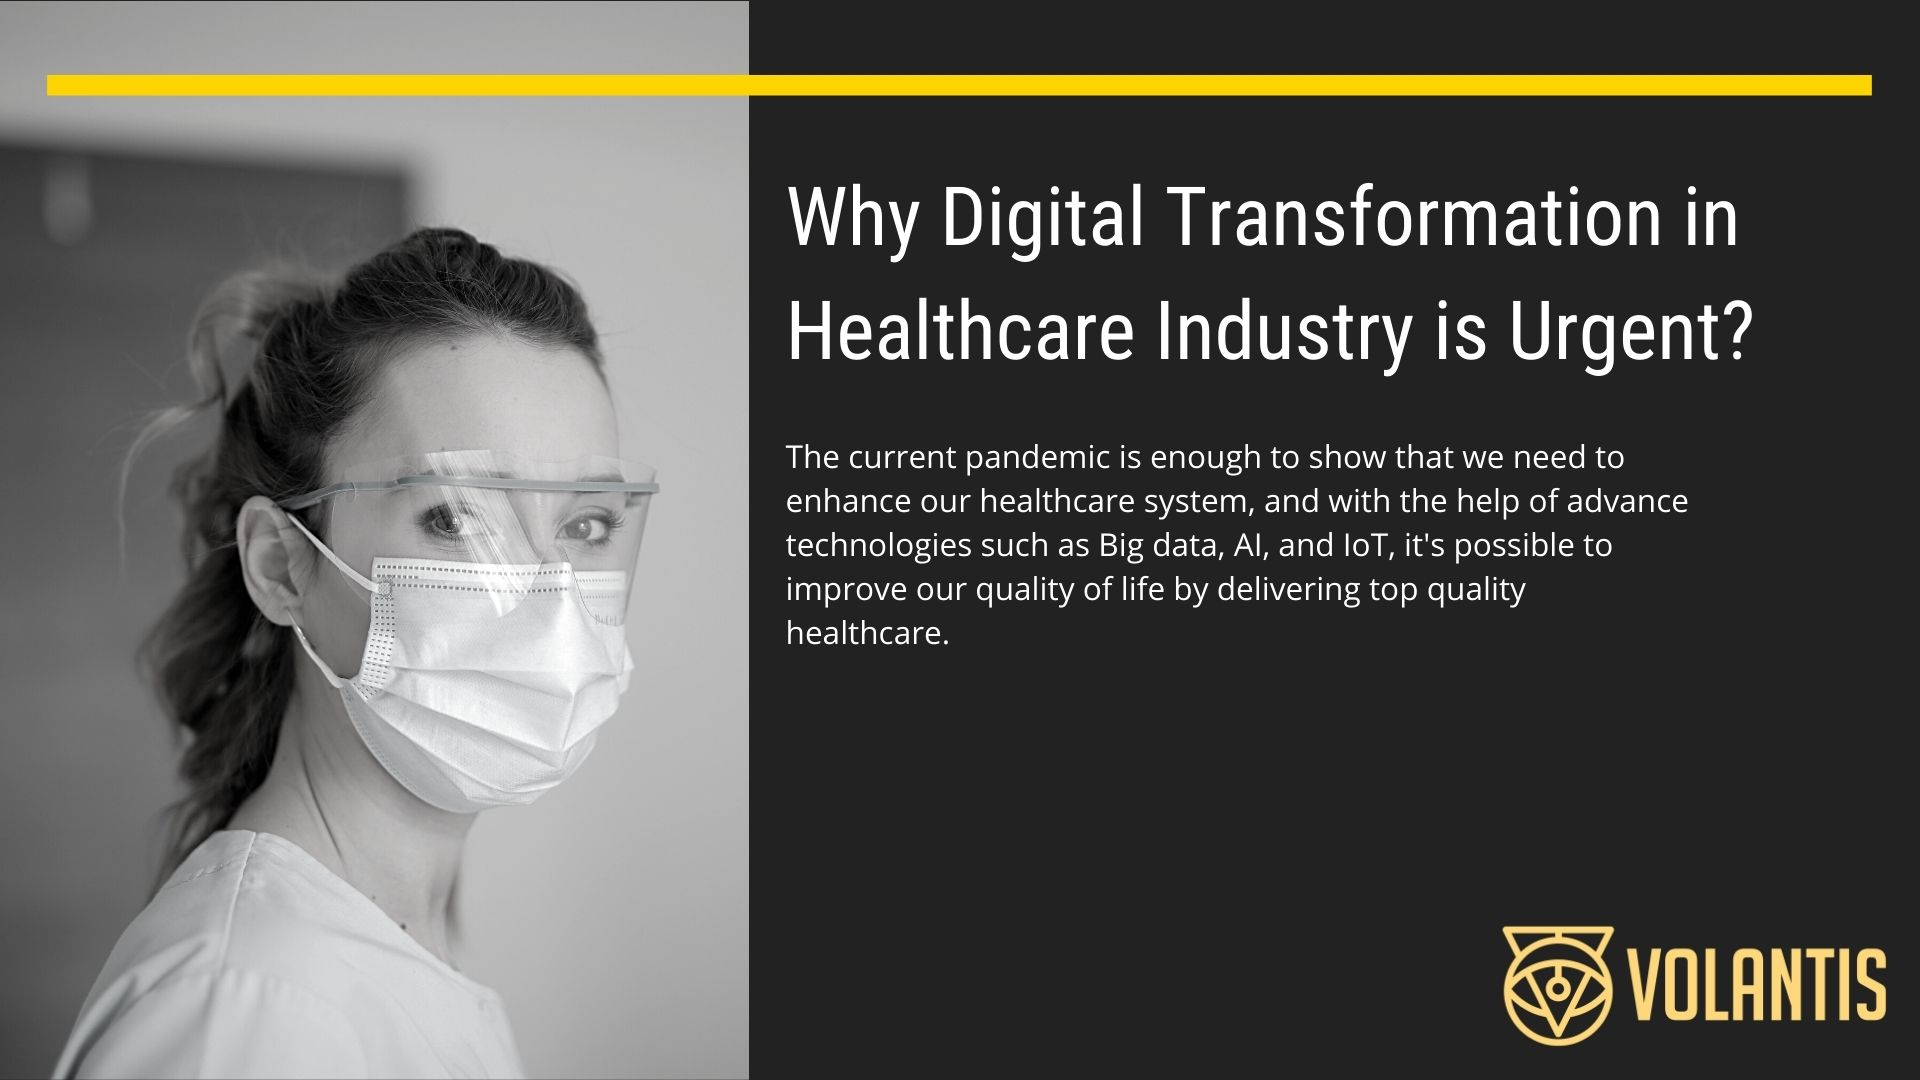 Digital Transformation in Healthcare is urgent and important because higher patient expectation and the need to enhance healthcare system globally